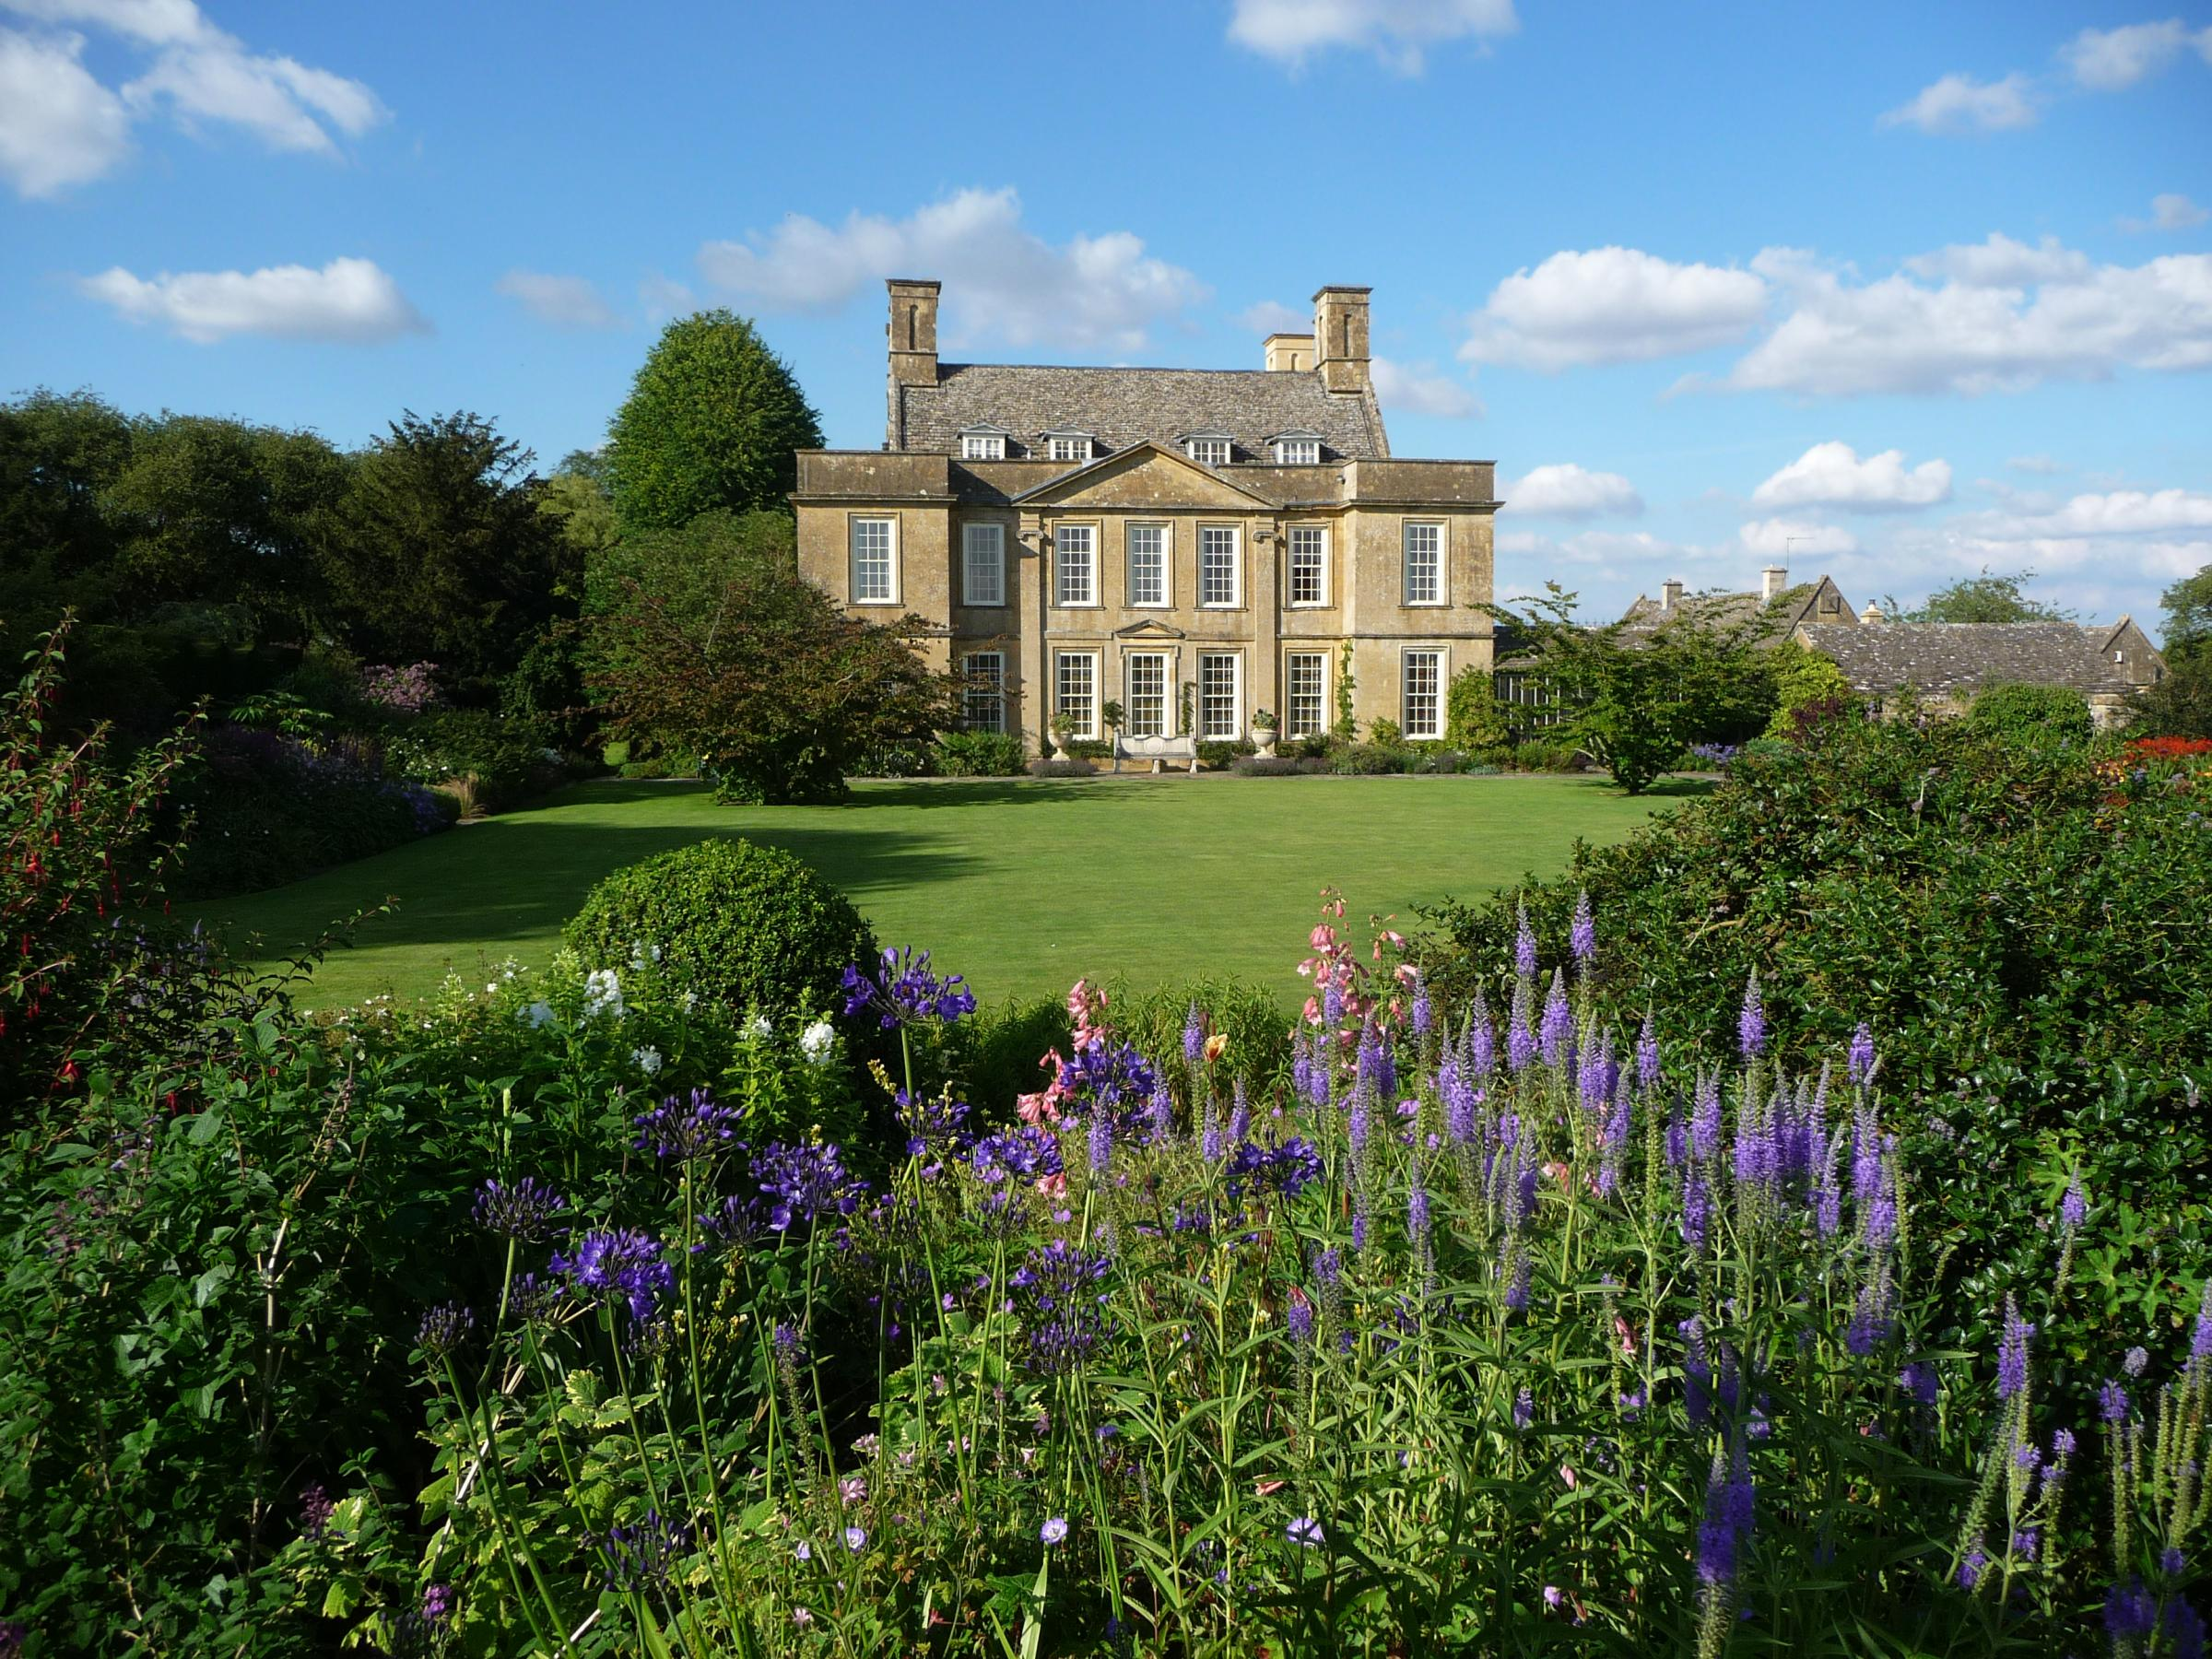 Bourton House Garden 2019 season